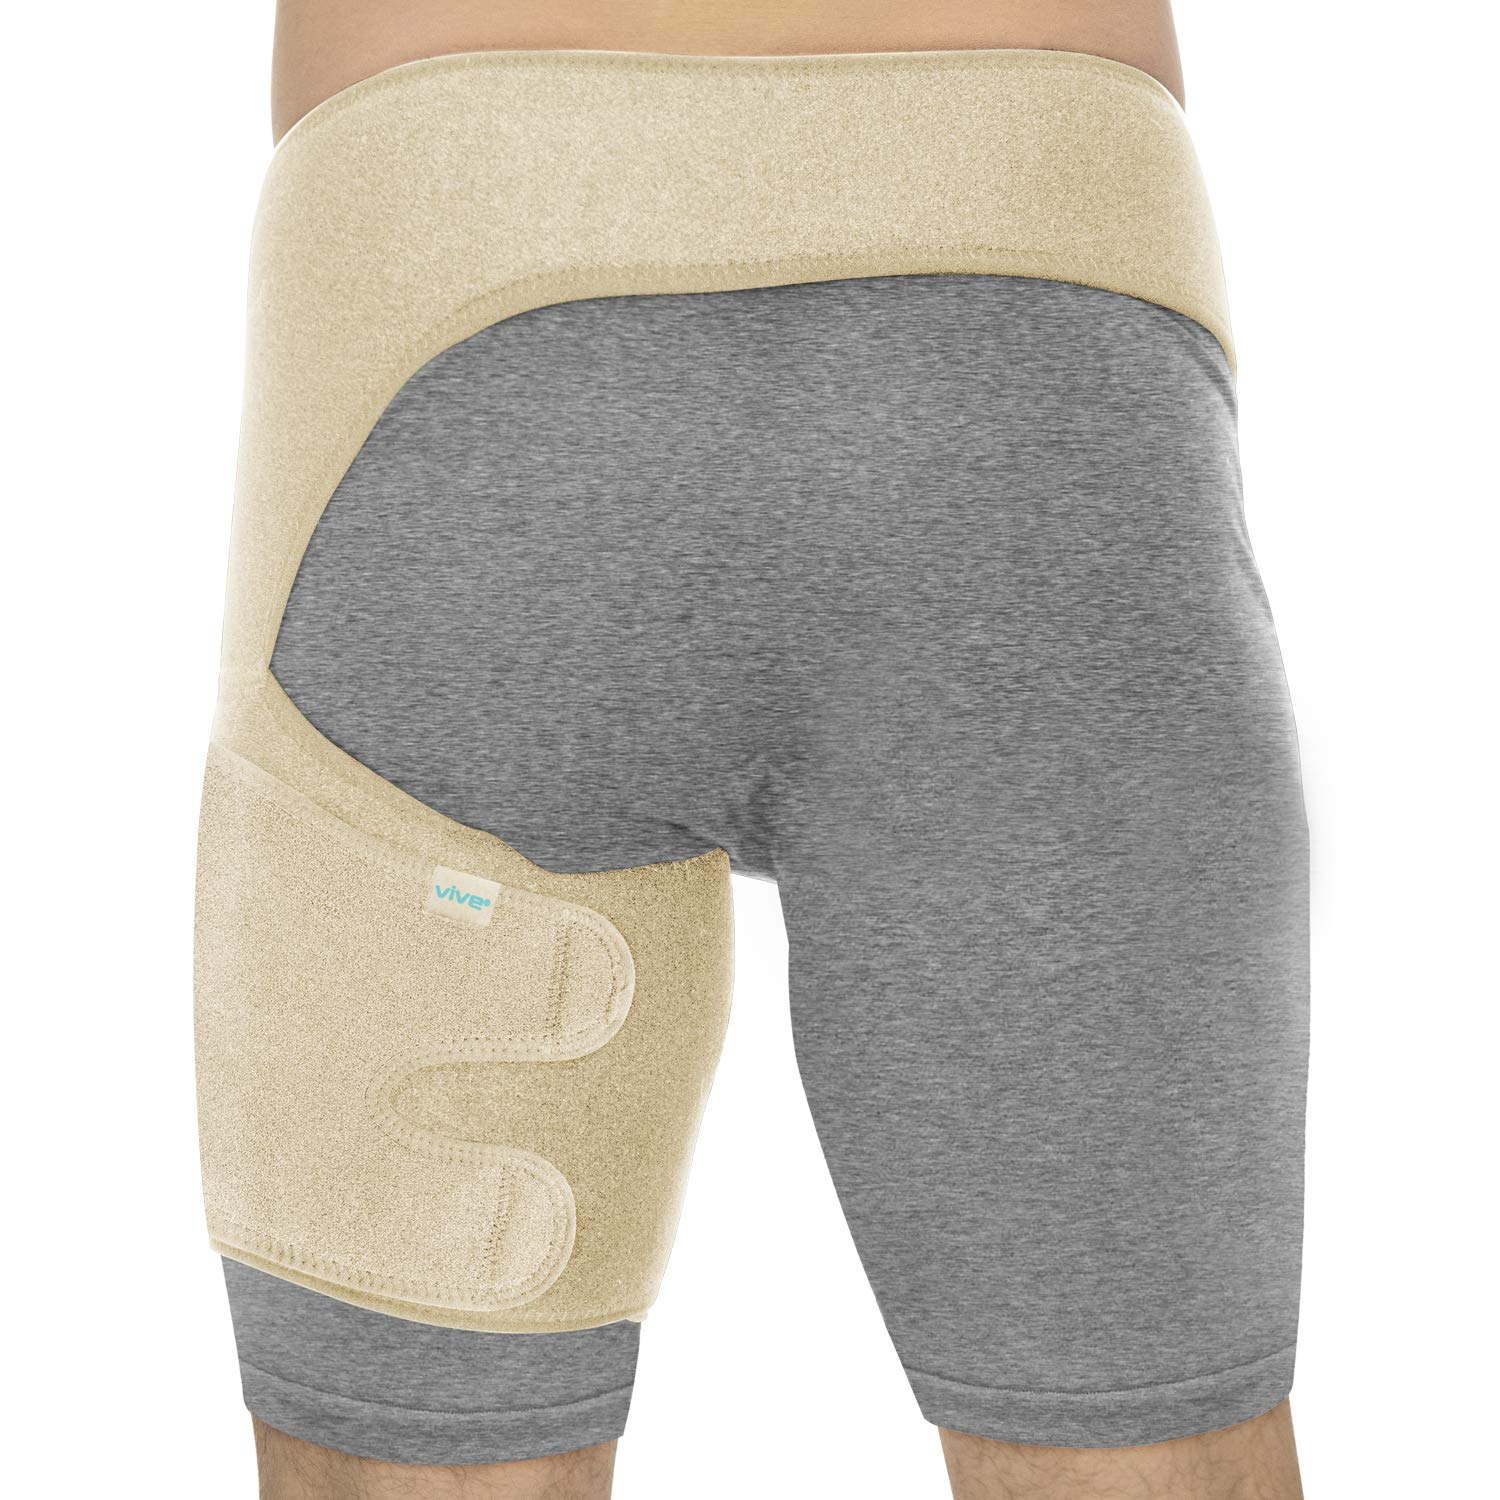 Vive Groin & Hip Brace - Sciatica Wrap for Men & Women - Compression Support for Nerve Pain Relief - Thigh, Hamstring Recovery for Joints, Flexor Strains, Pulled Muscles (Beige, Waist: 25''-48'')